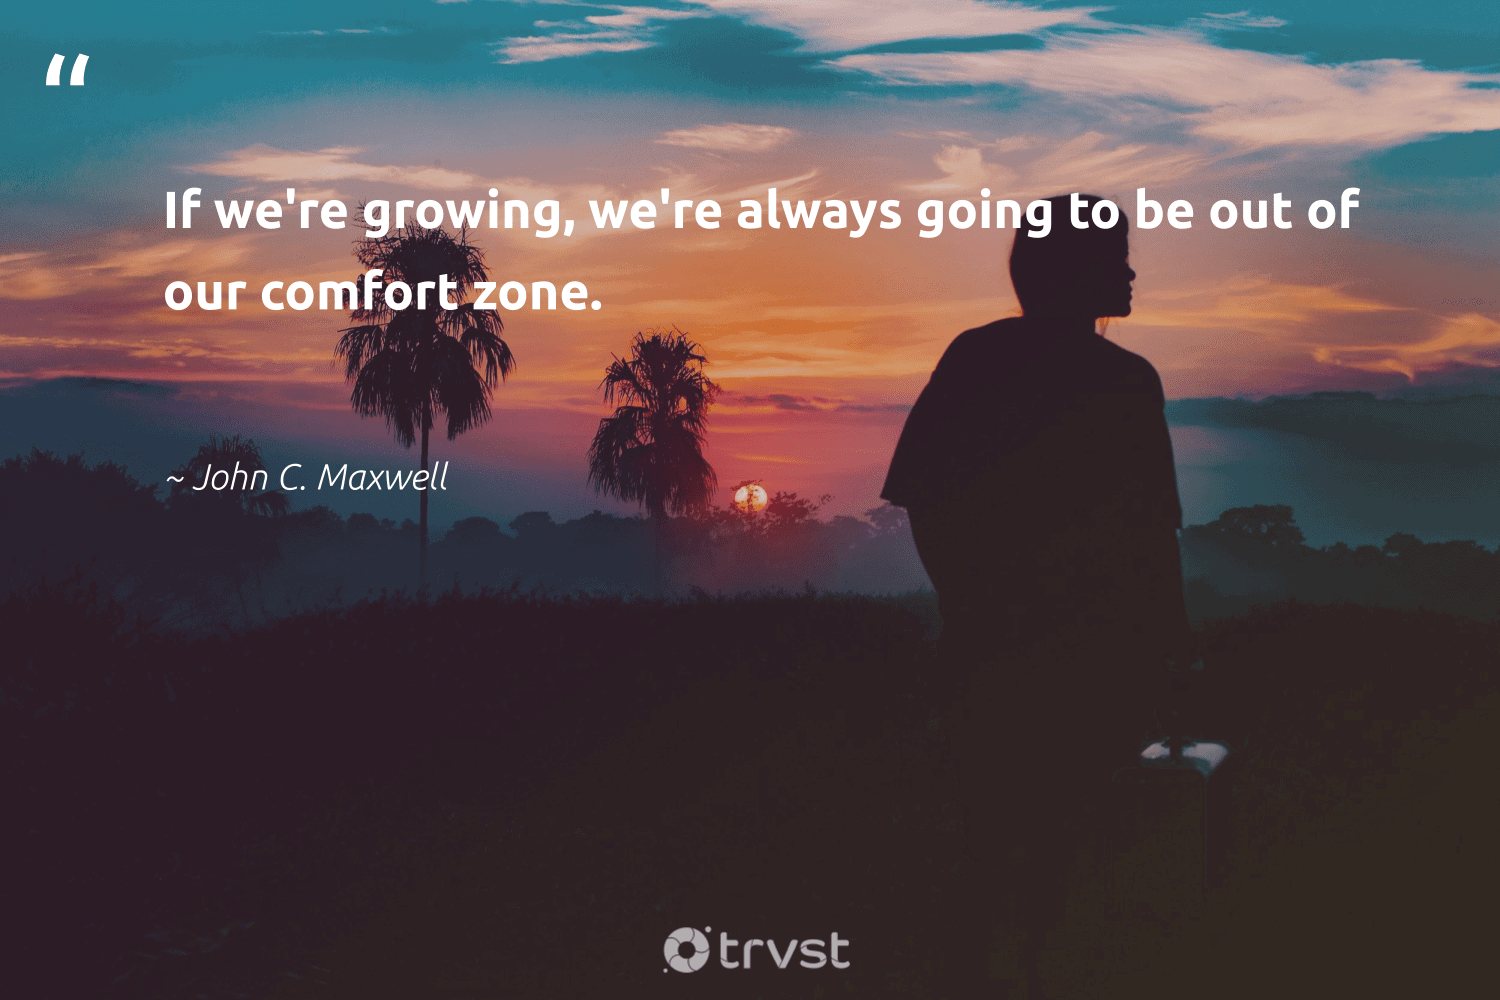 """""""If we're growing, we're always going to be out of our comfort zone. """"  - John C. Maxwell #trvst #quotes #softskills #changetheworld #futureofwork #thinkgreen #nevergiveup #bethechange #begreat #gogreen #dogood #socialimpact"""